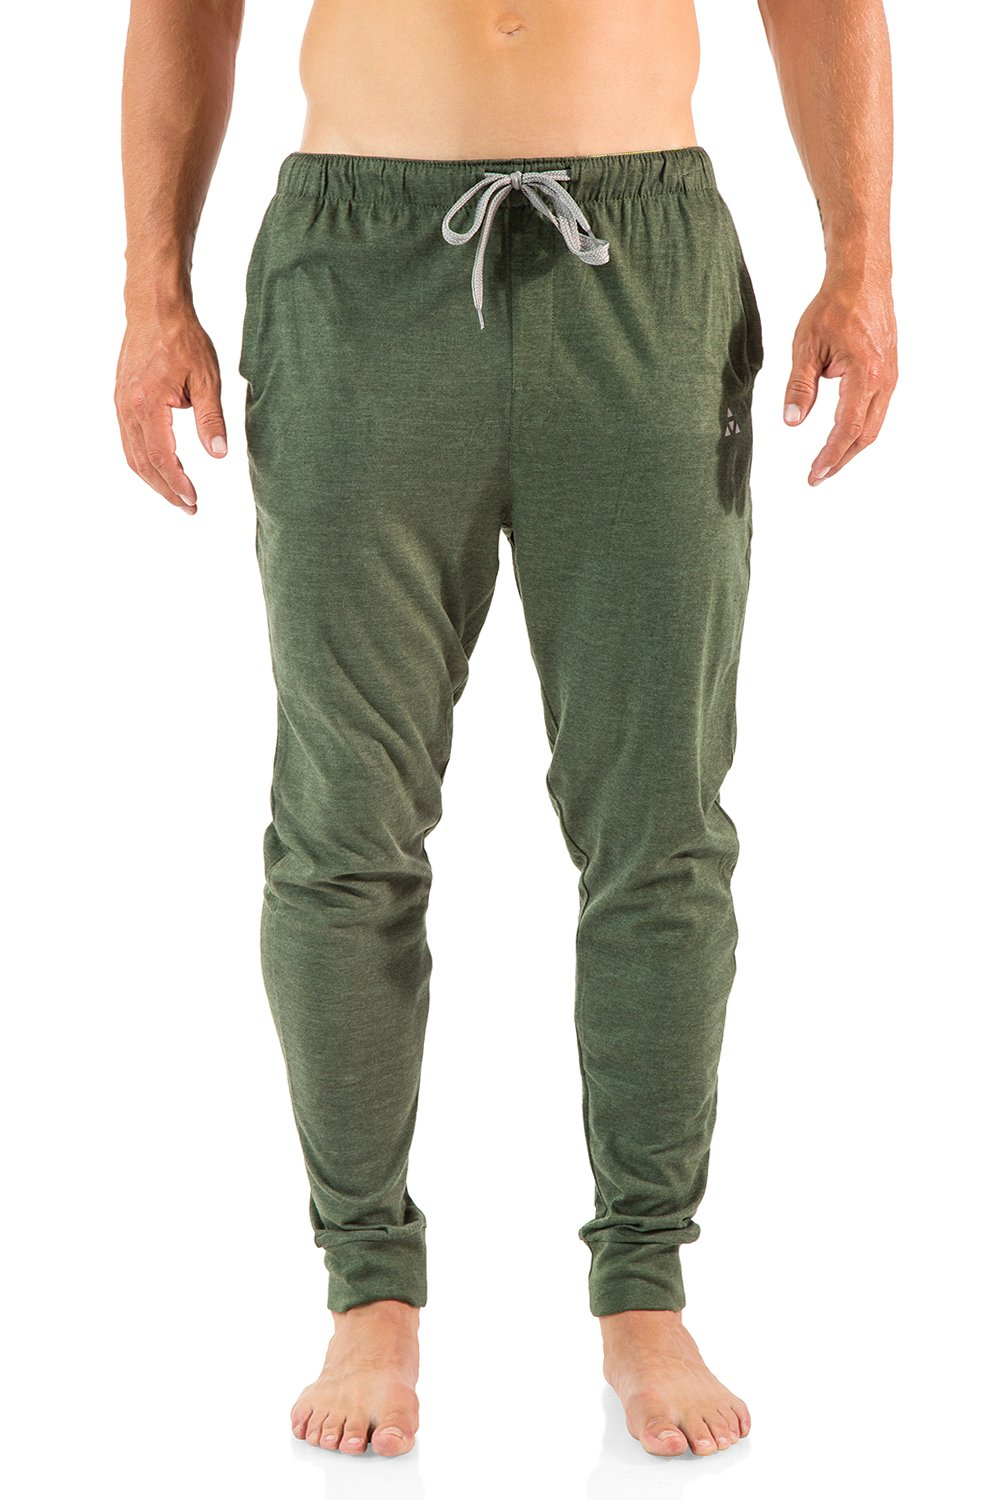 Balanced Tech Men's Cotton Knit Jogger Lounge Pants - Sage - XX-Large